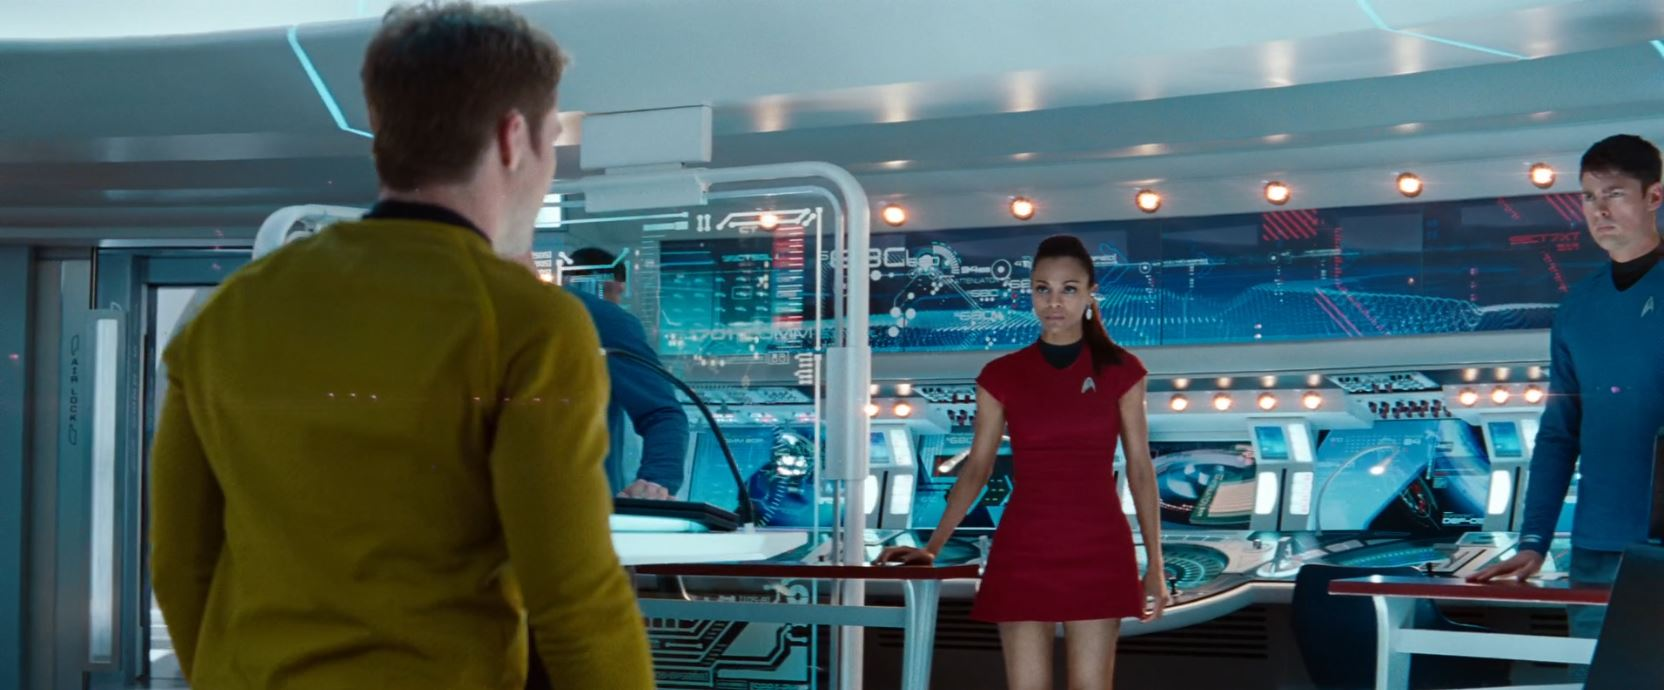 New Star Trek TV series - Zoe Saldana in skirt uniform